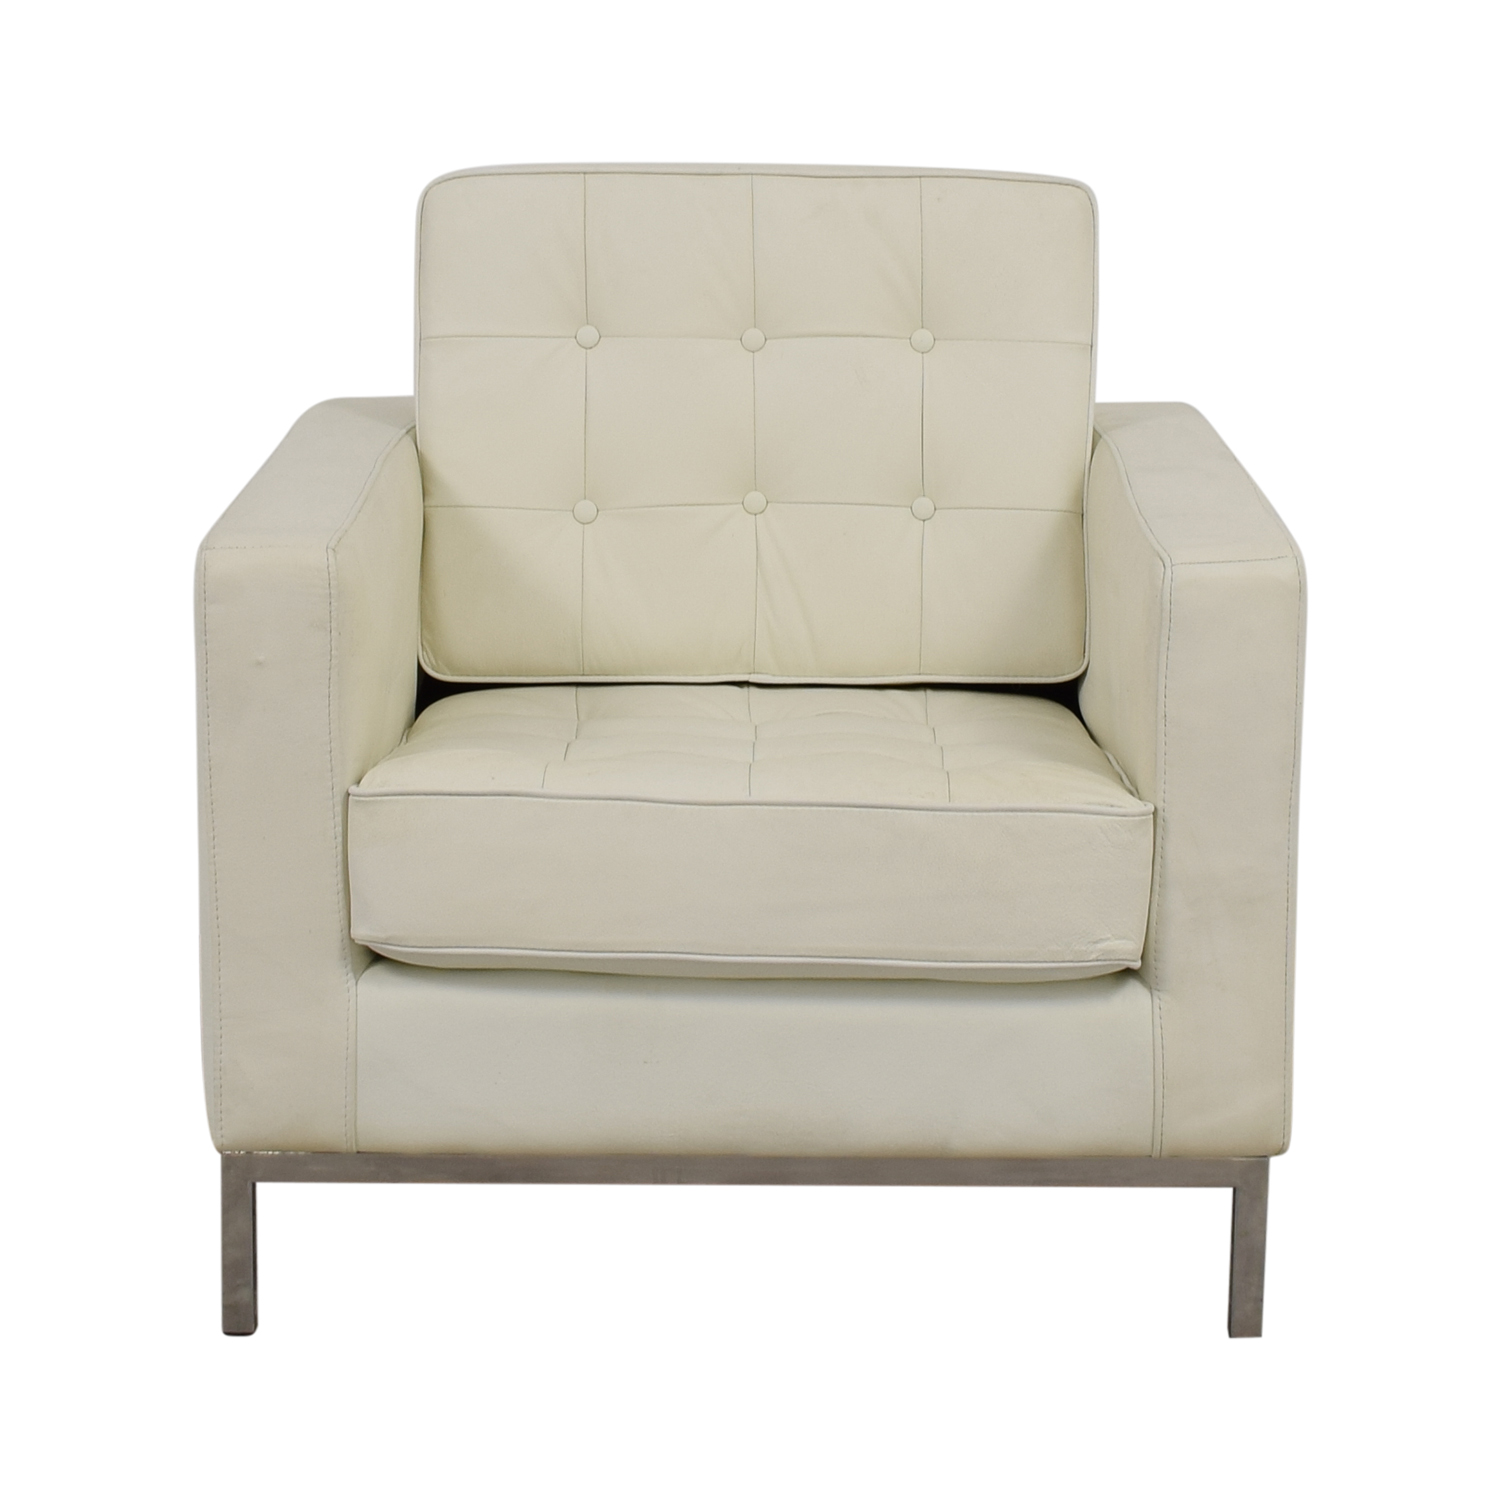 White Tufted Accent Chair 87 Off Rooms To Go Rooms To Go Grey Tufted Chair Chairs